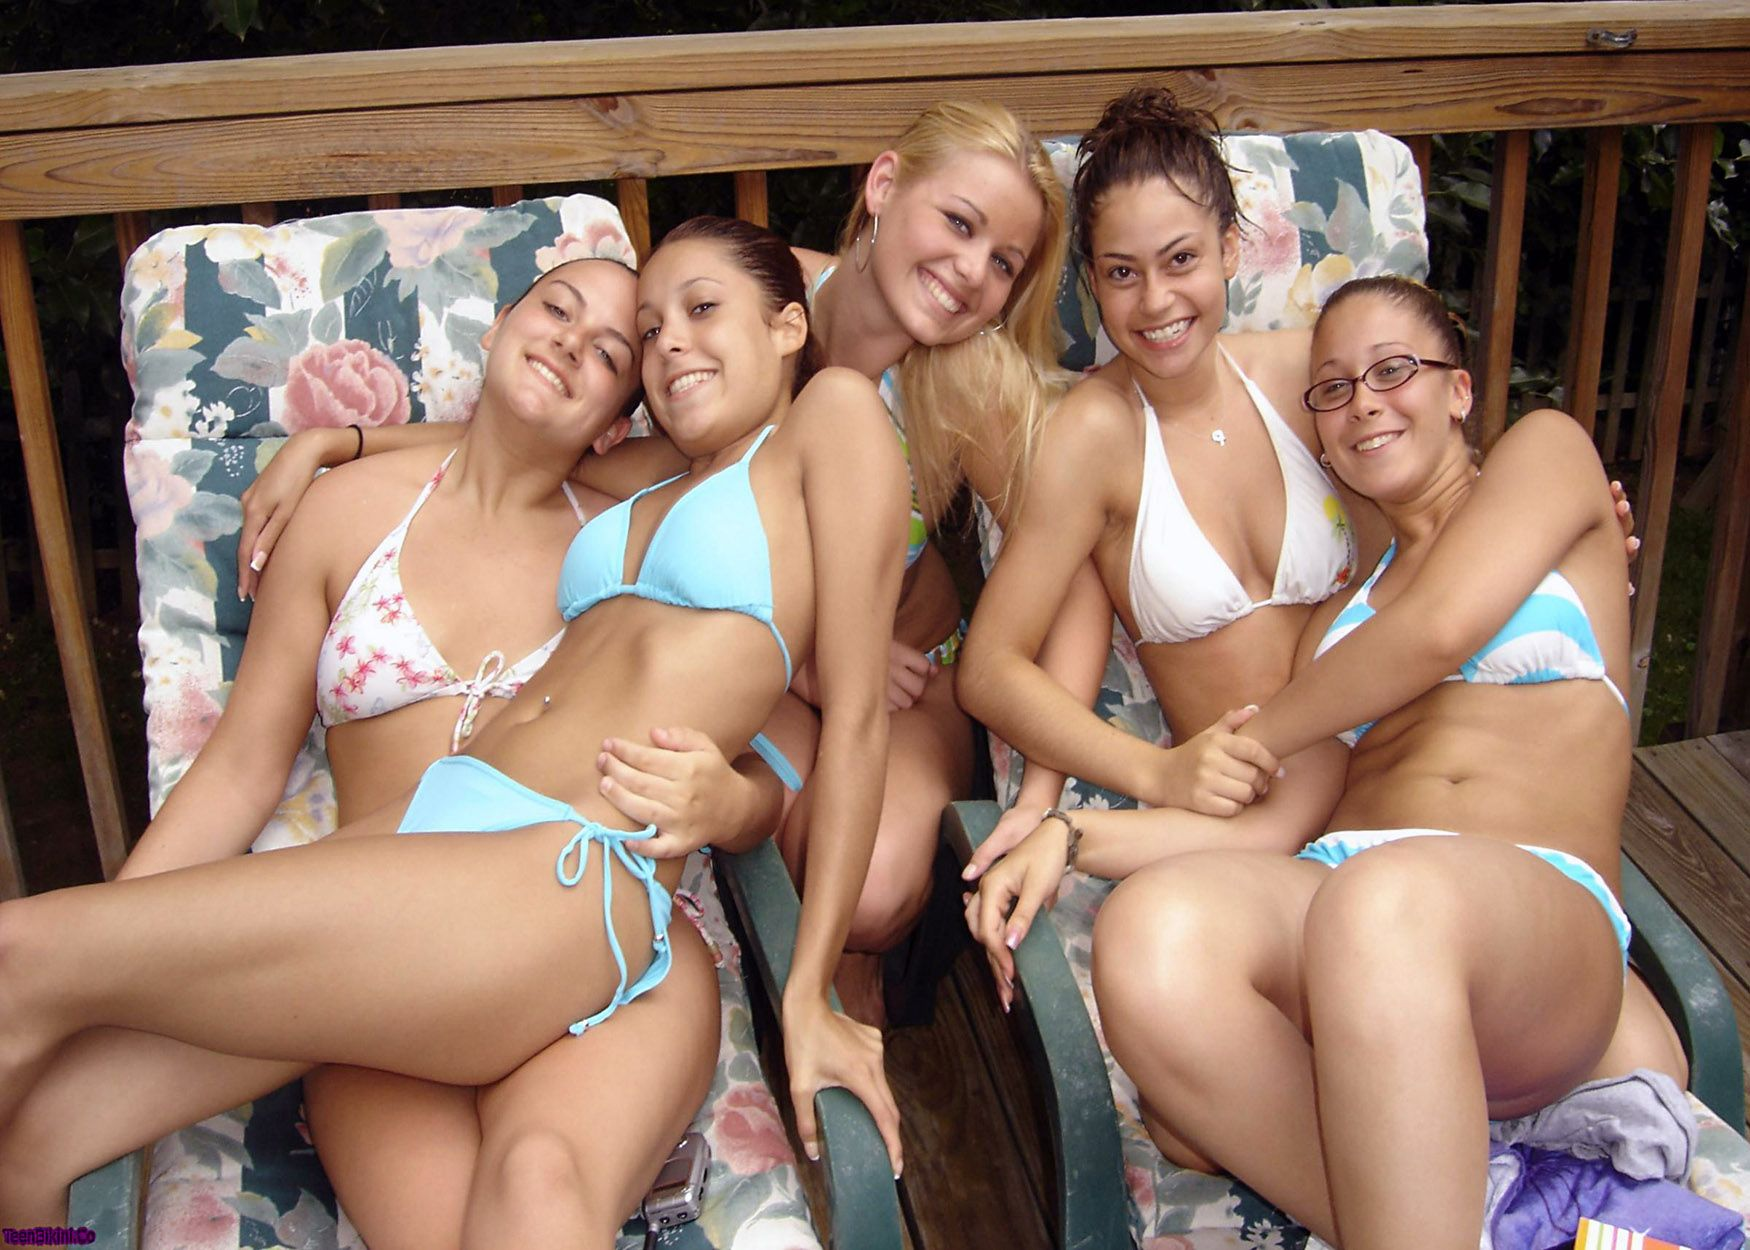 Group of Girls, Summer, Sun, Playing, Bikini, Bikinis | Free ...